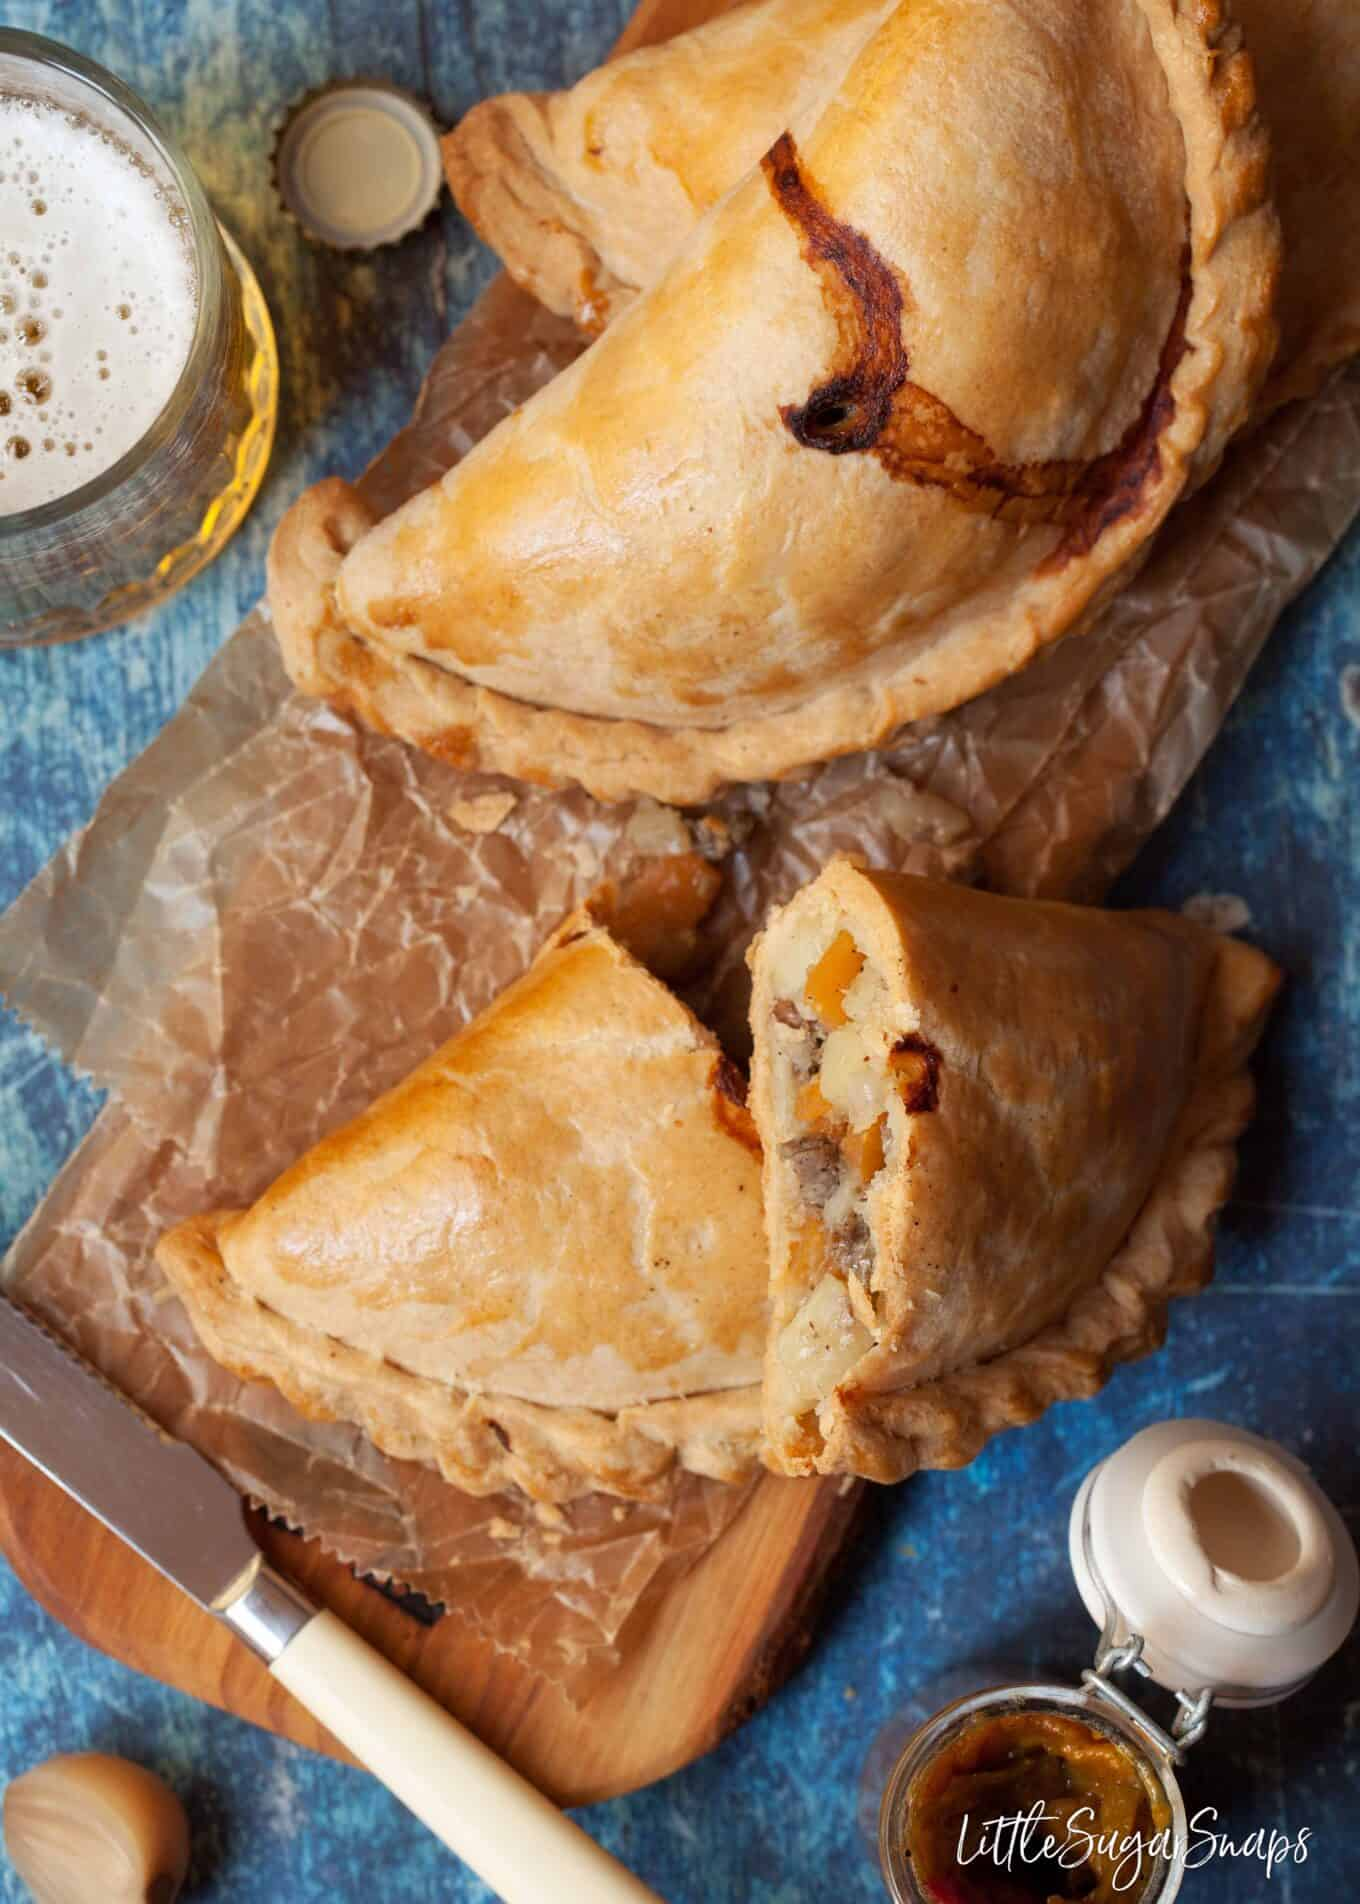 meat and vegetable pasties - one cut open to reveal the filling on a wooden serving platter with beer and relish